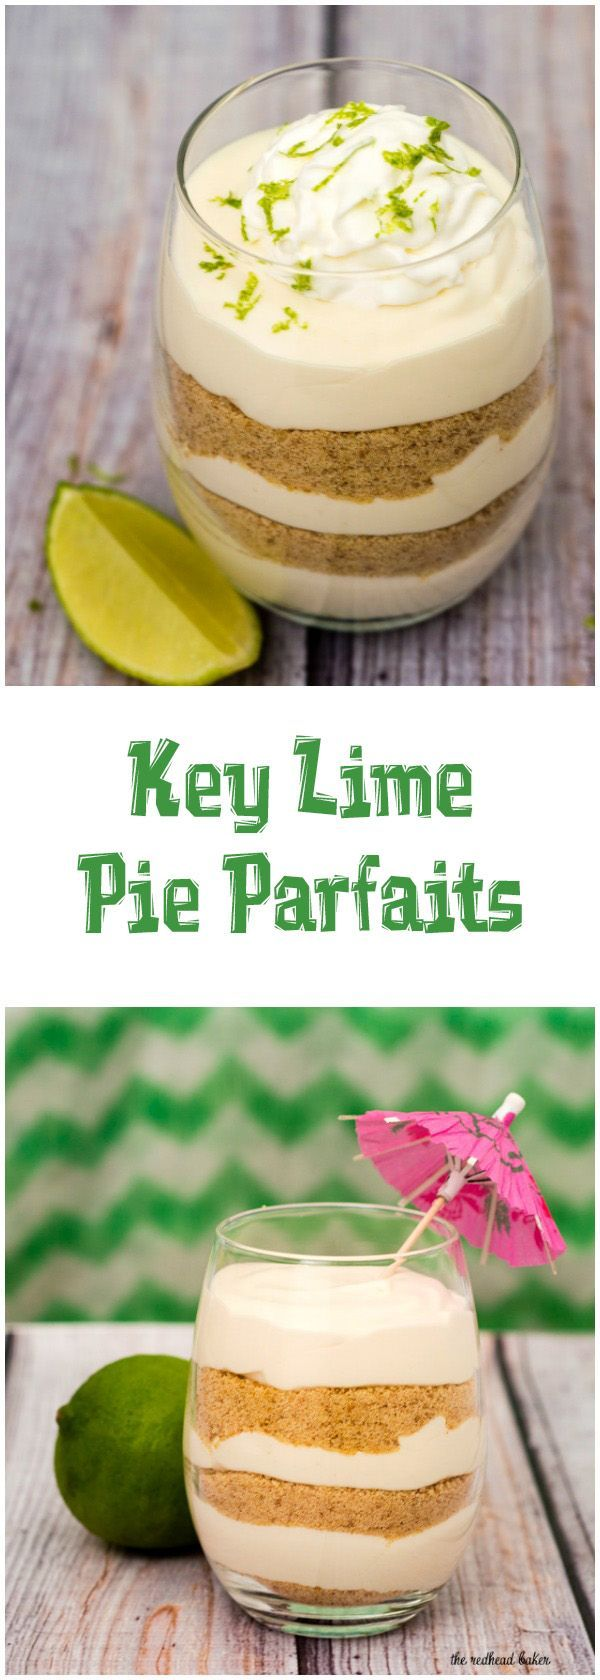 Key lime pie parfaits — all the flavor of the pie without the work! This no-bake layered dessert is quick and easy to make. #BrunchWeek http://TheRedheadBaker.com (Chocolate Desserts No Bake)